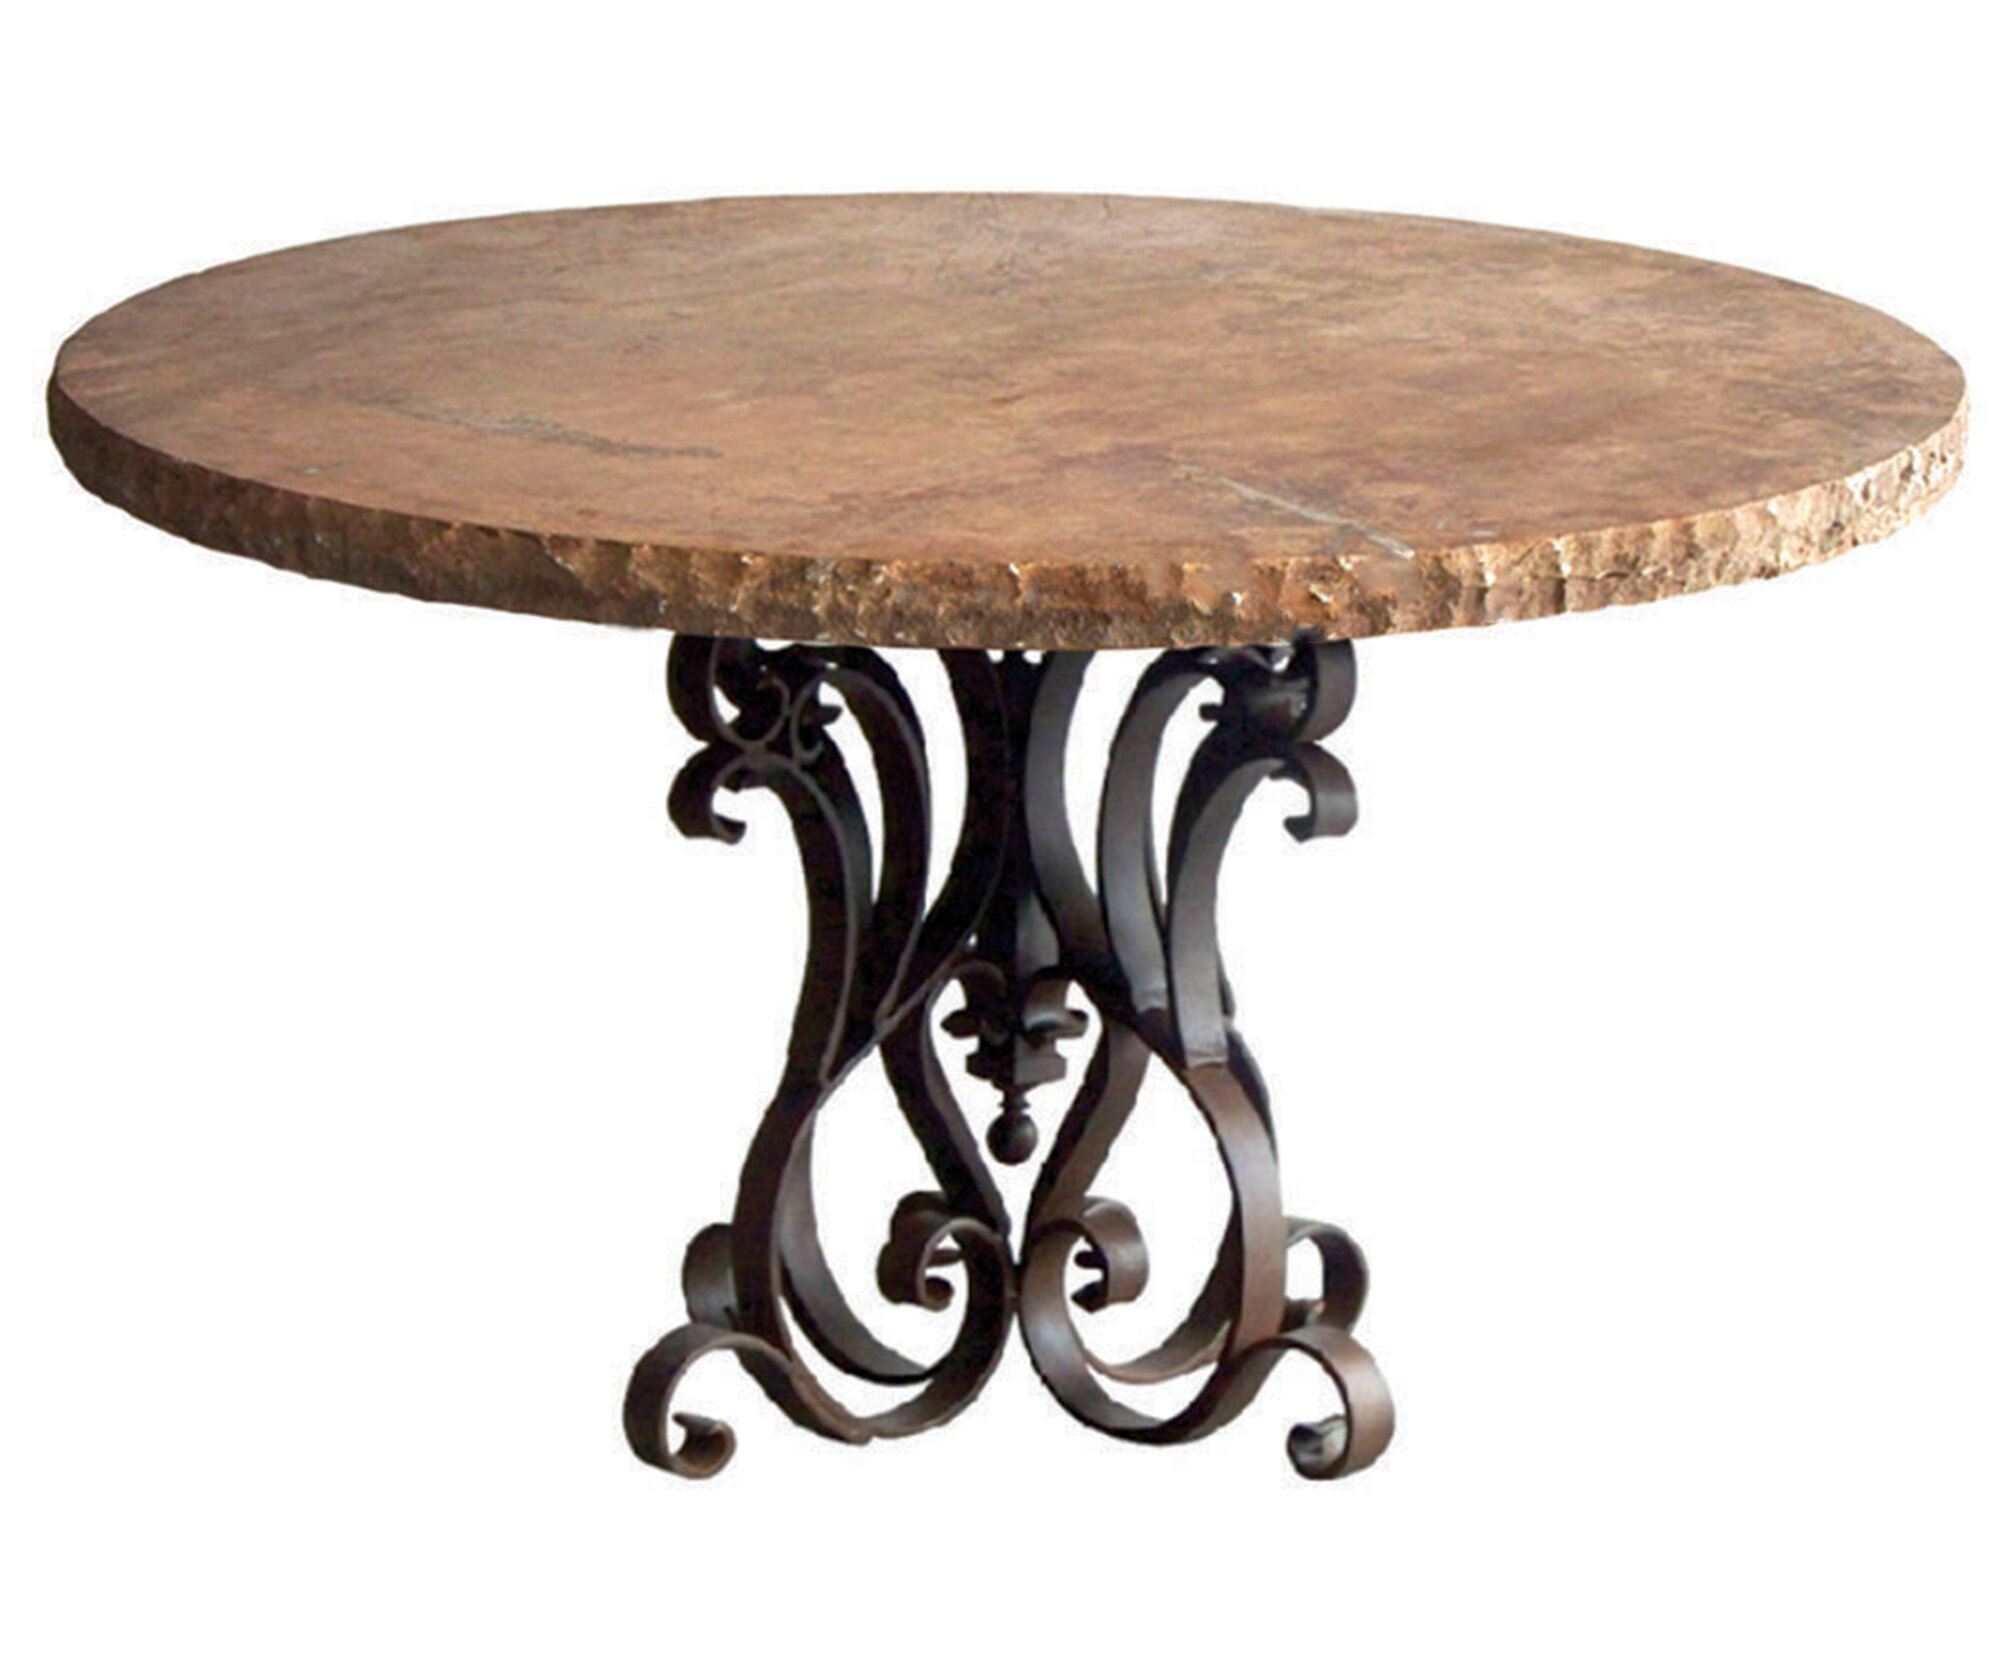 Mexports By Susana Molina Rustic Dining Table Made Of Wrought Iron With Travertine Top With Chisel Edge Wayfair